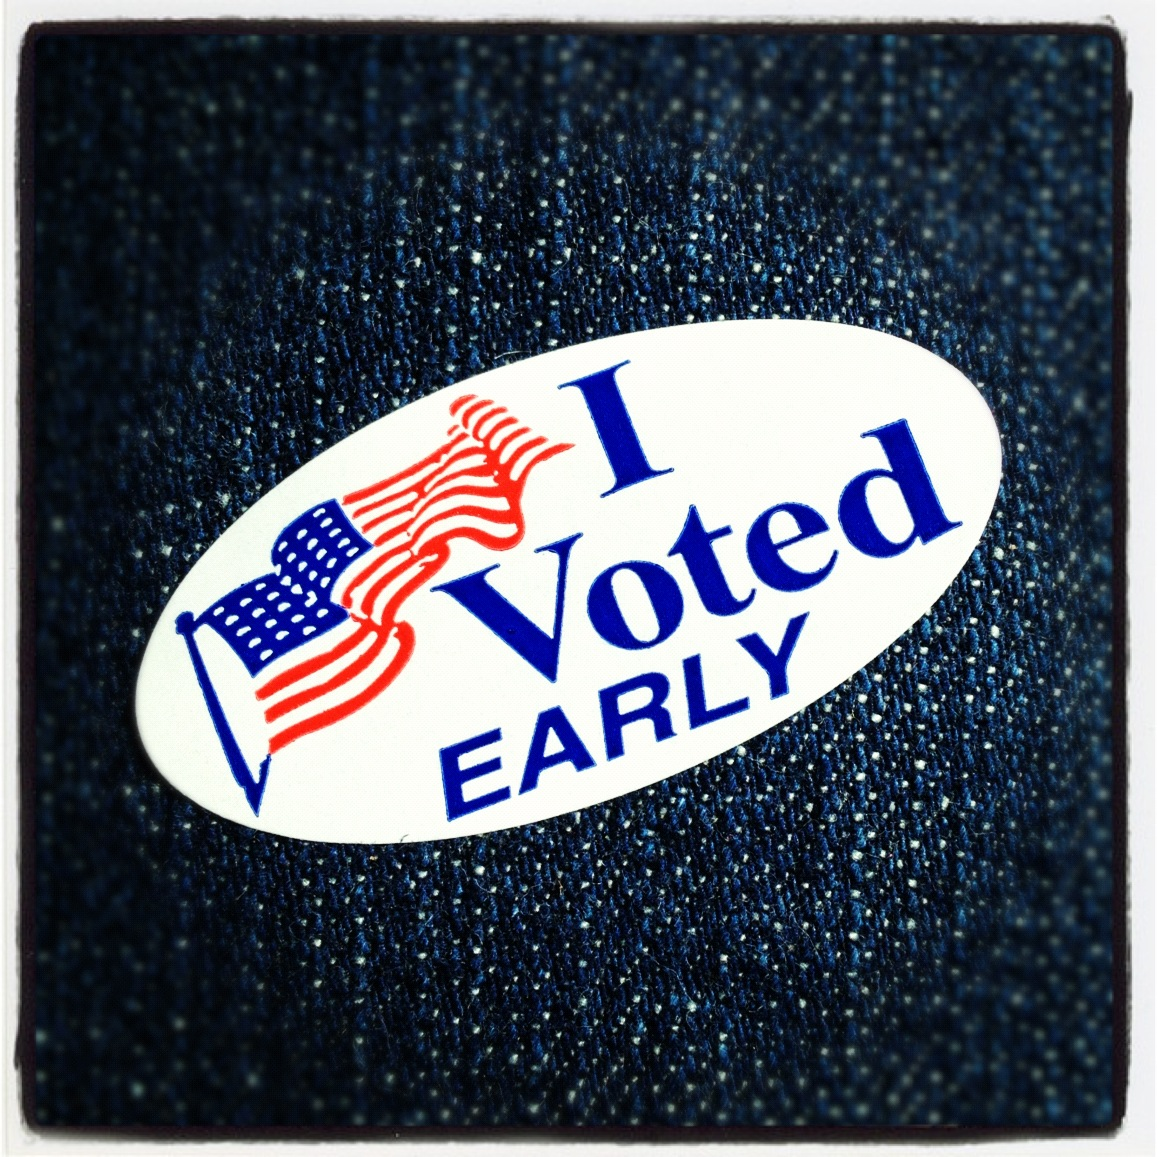 I Voted Early Sticker